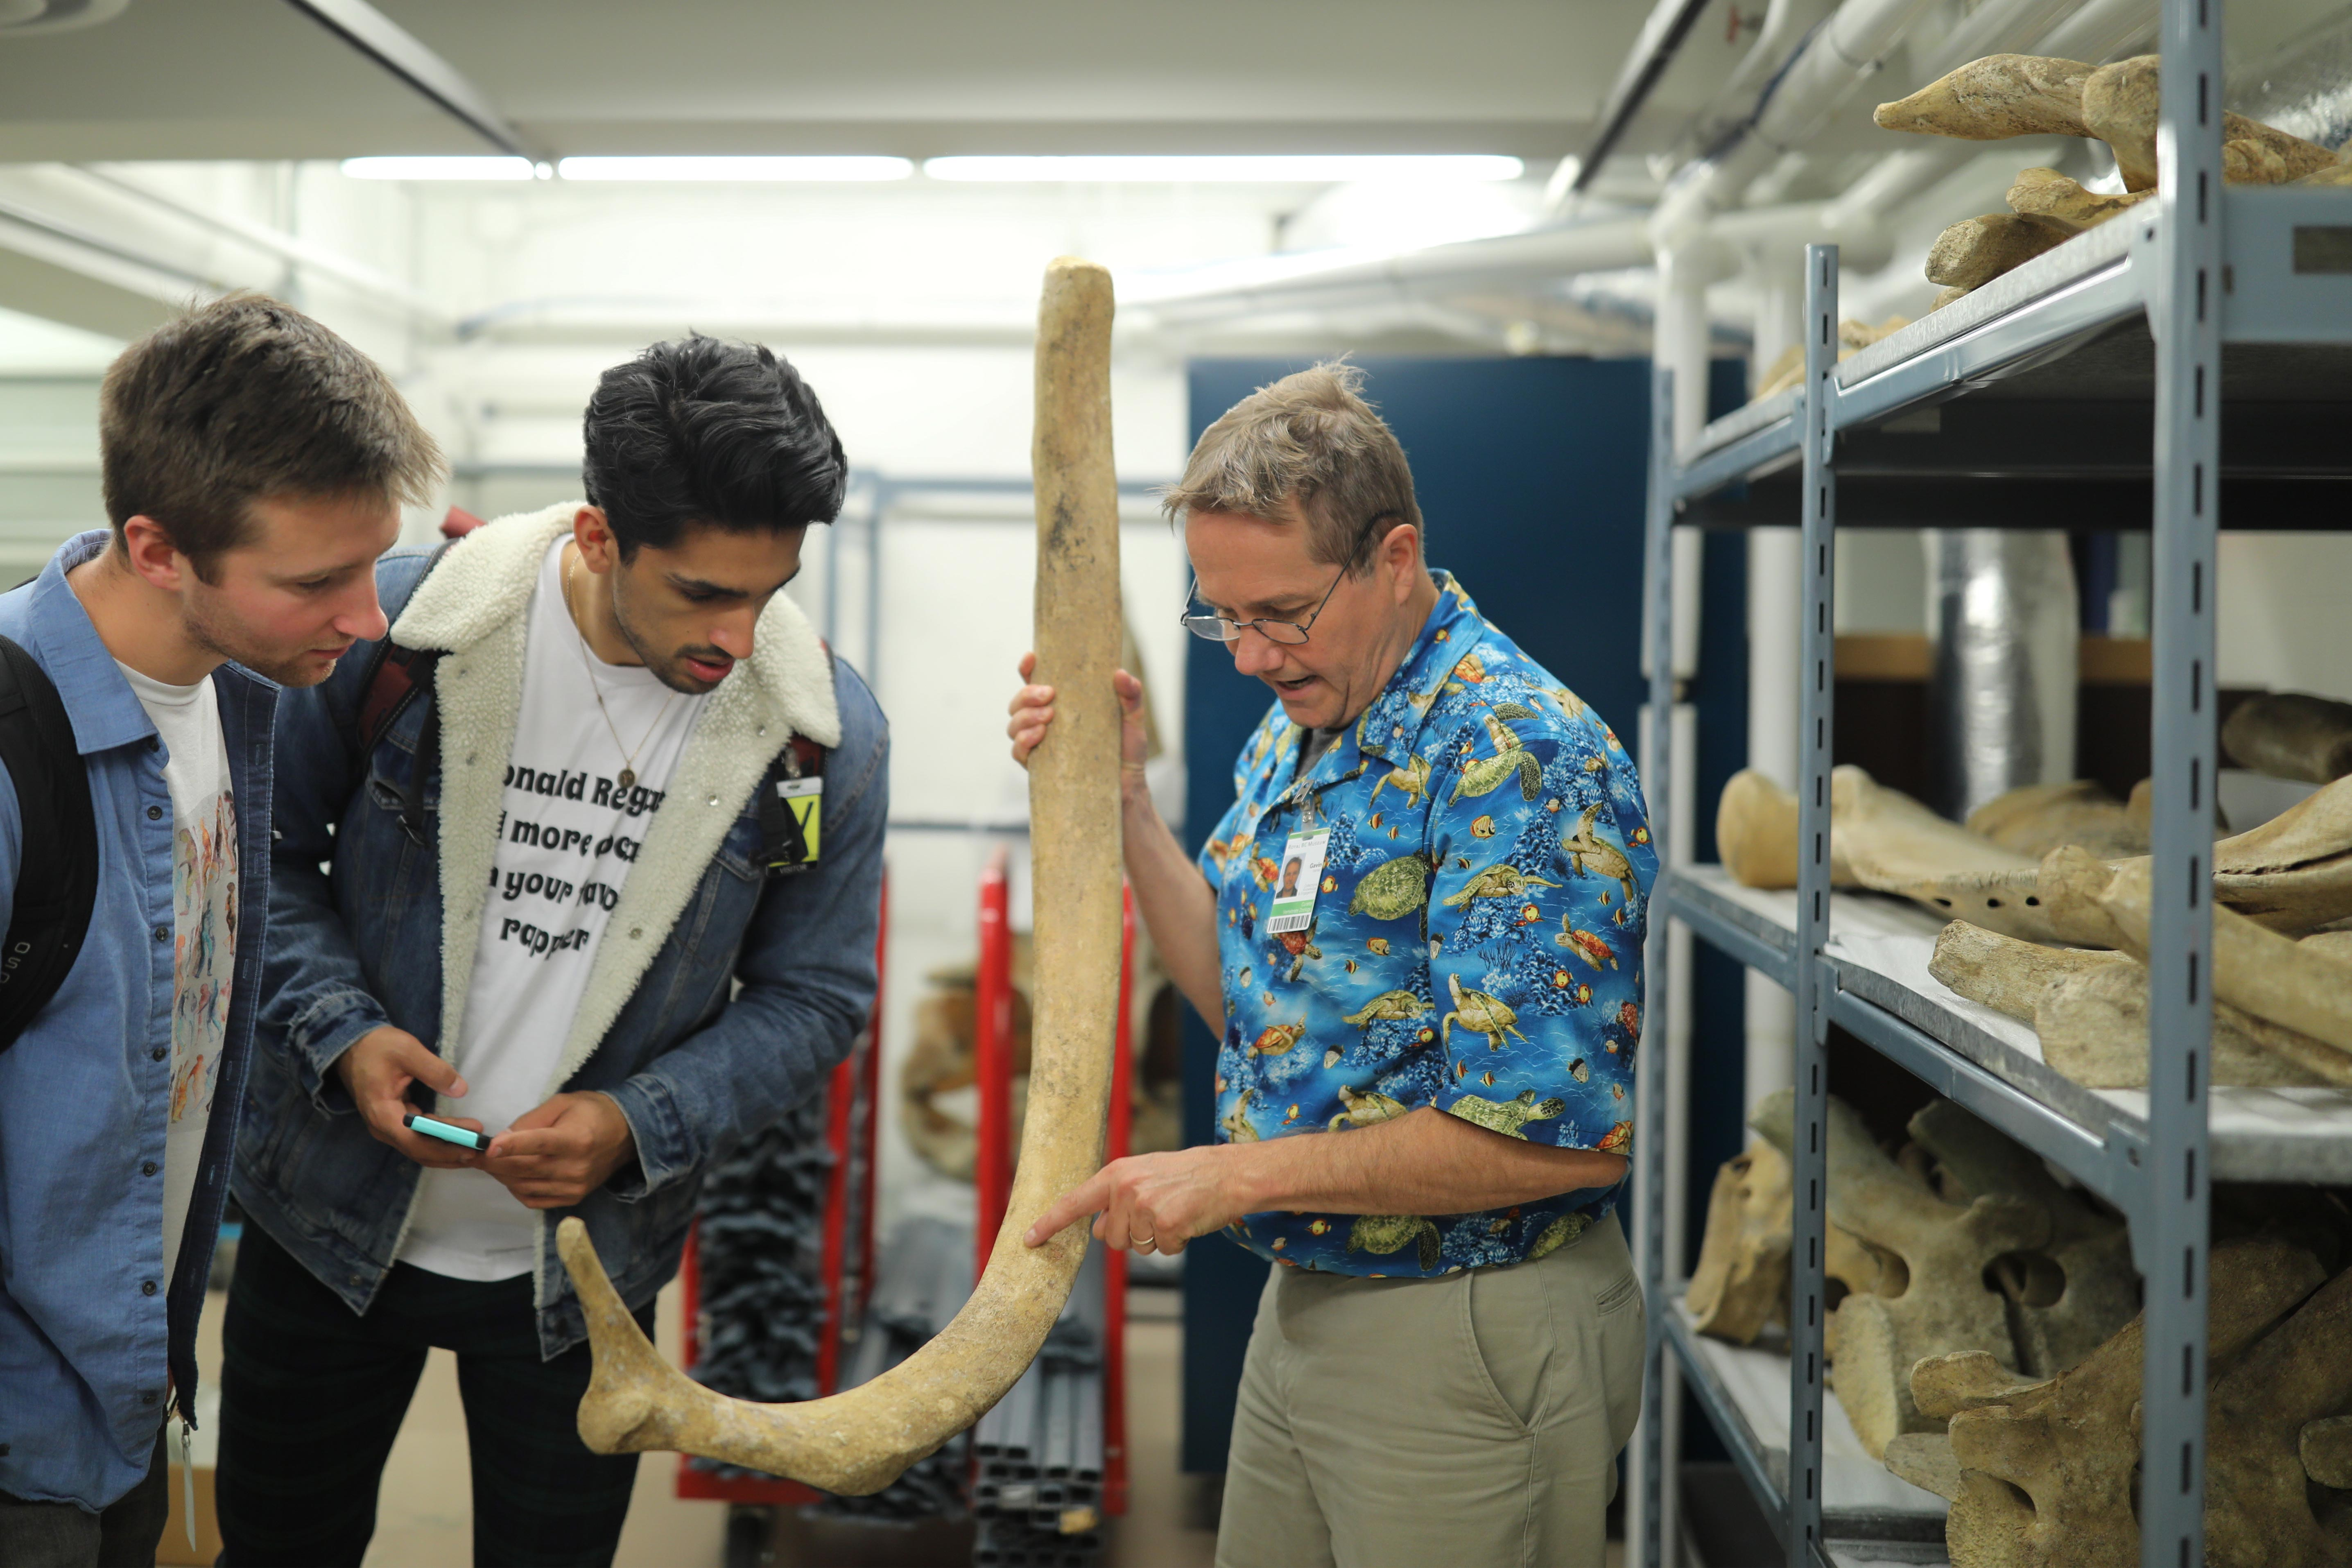 Man pointing out something on a large whale bone to two UVic students